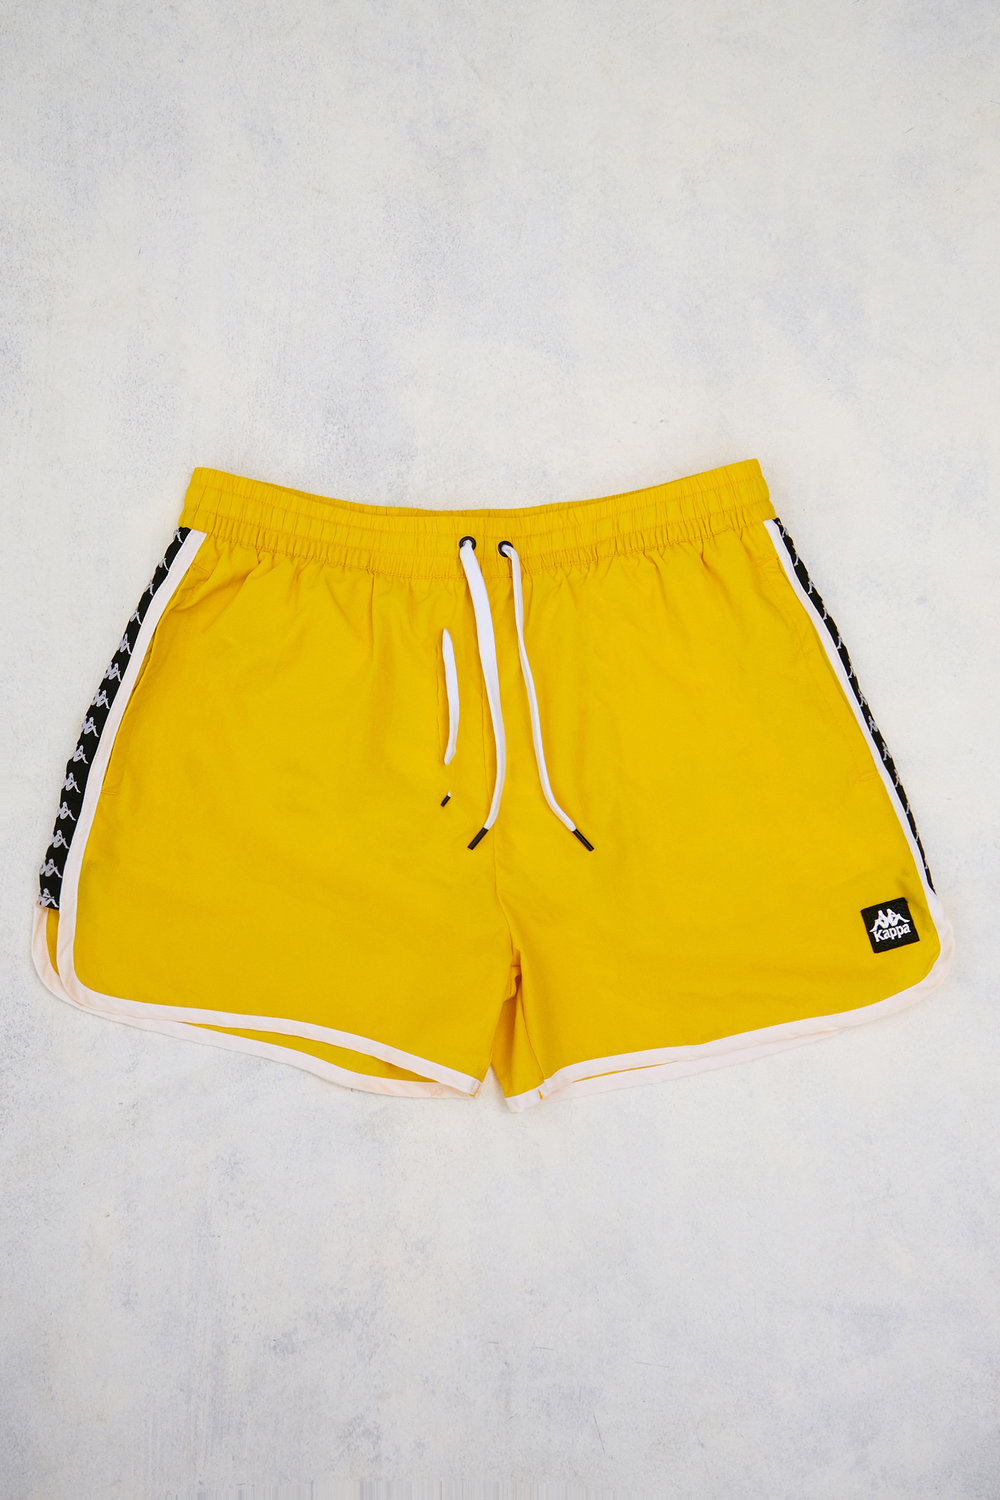 Kappa yellow swim shorts - £35